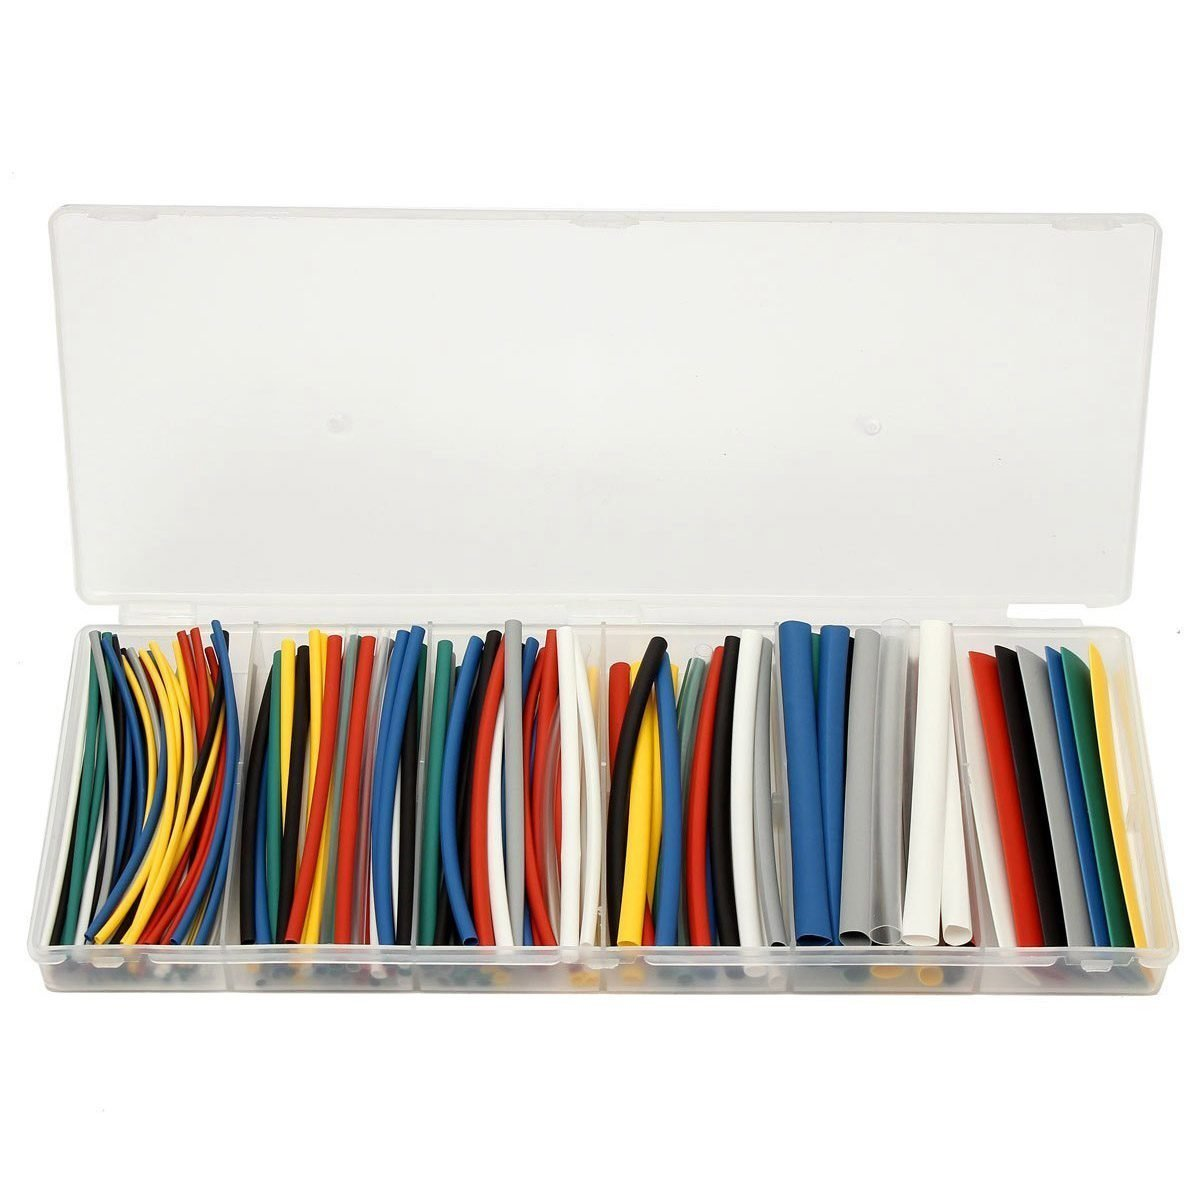 SODIAL(R) 176pcs 2:1 Polyolefin Halogen-Free Heat Shrink Tube Sleeving 8 Color 6 Size